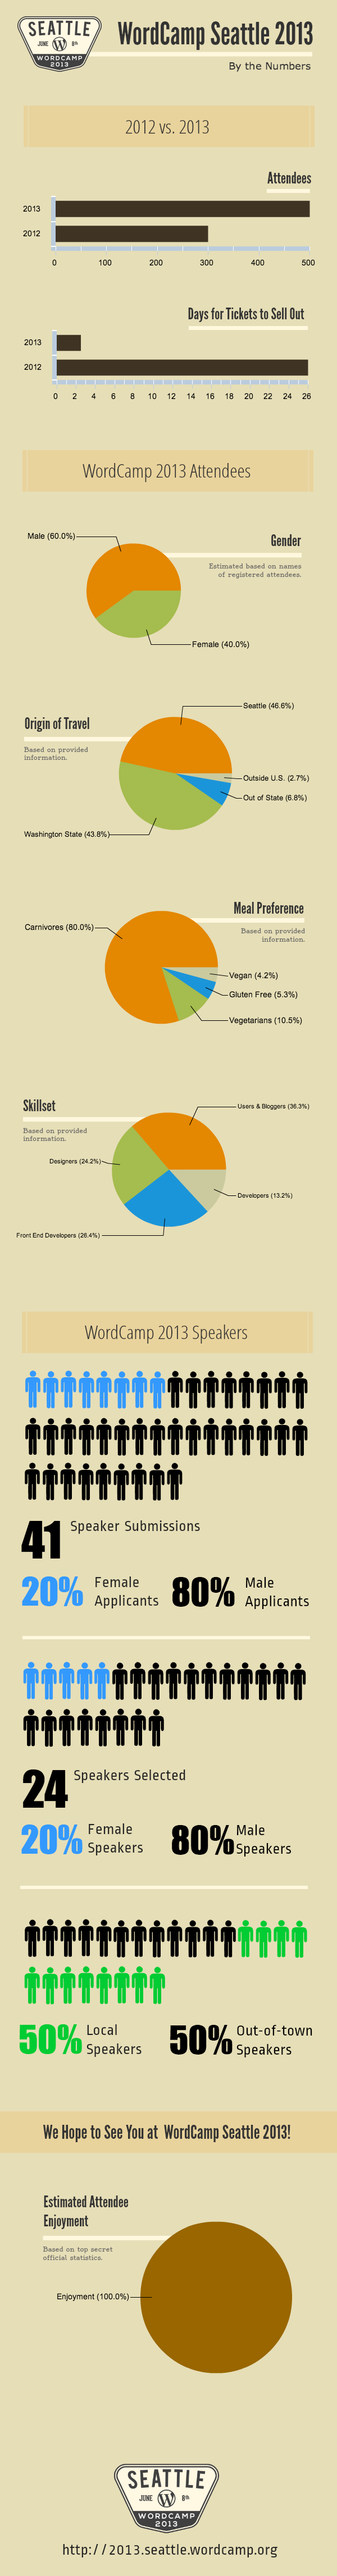 WordCamp Seattle 2013 by the numbers Infographic